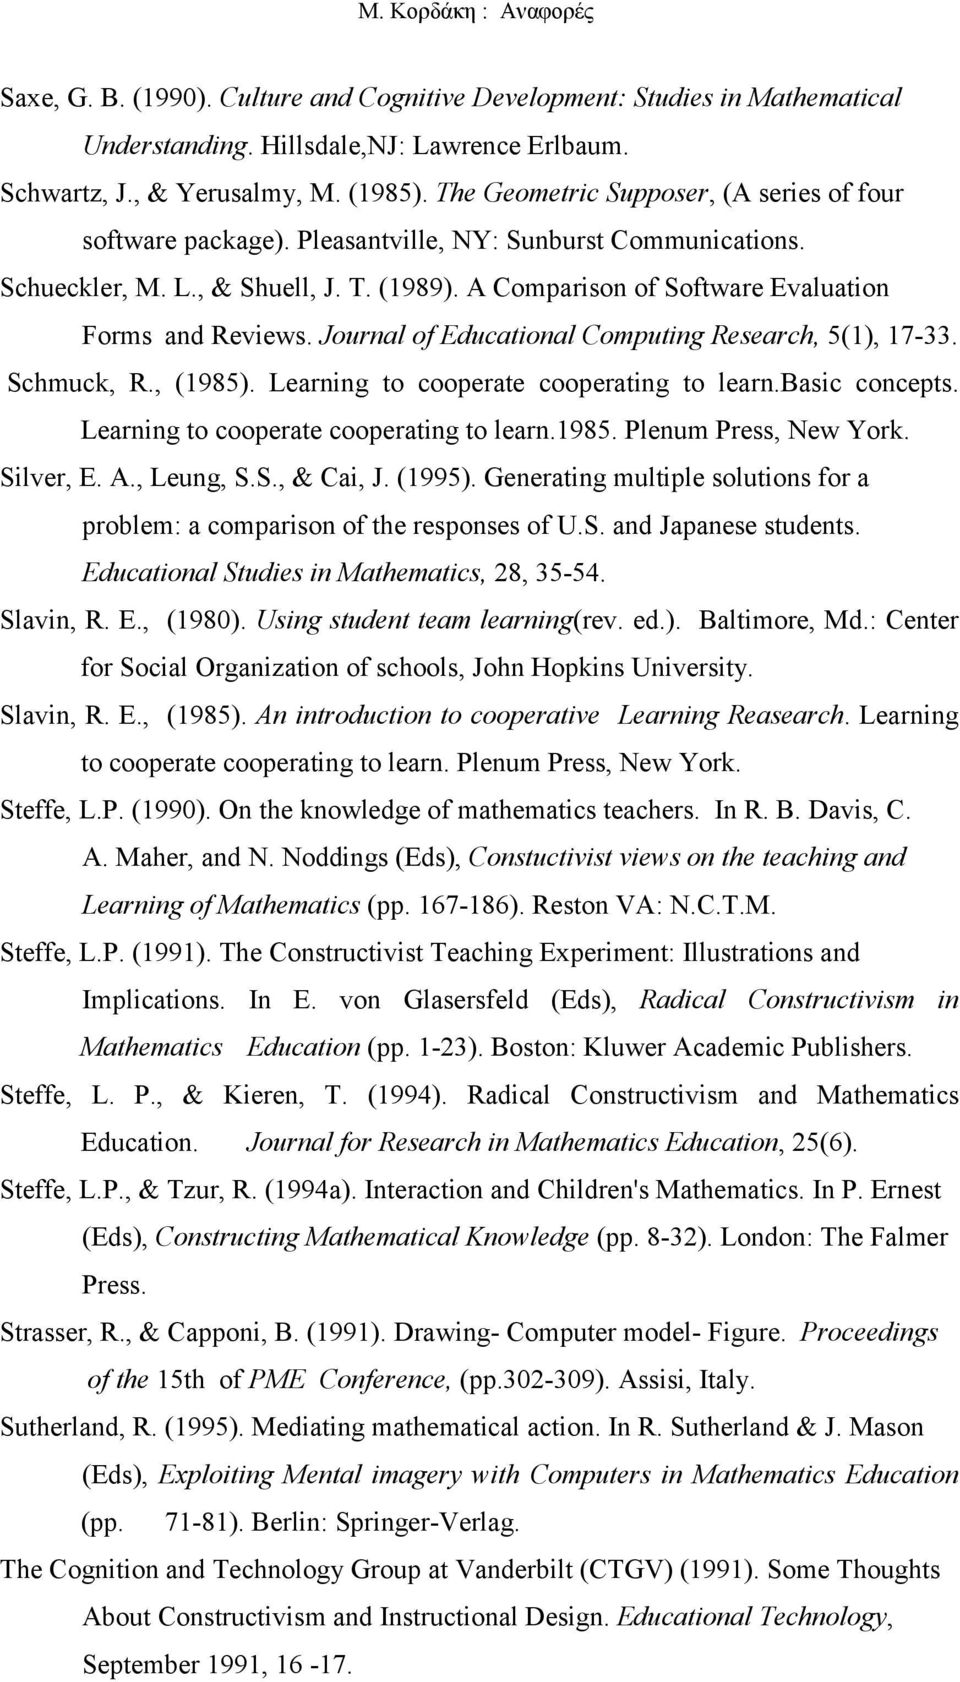 A Comparison of Software Evaluation Forms and Reviews. Journal of Educational Computing Research, 5(1), 17-33. Schmuck, R., (1985). Learning to cooperate cooperating to learn.basic concepts.